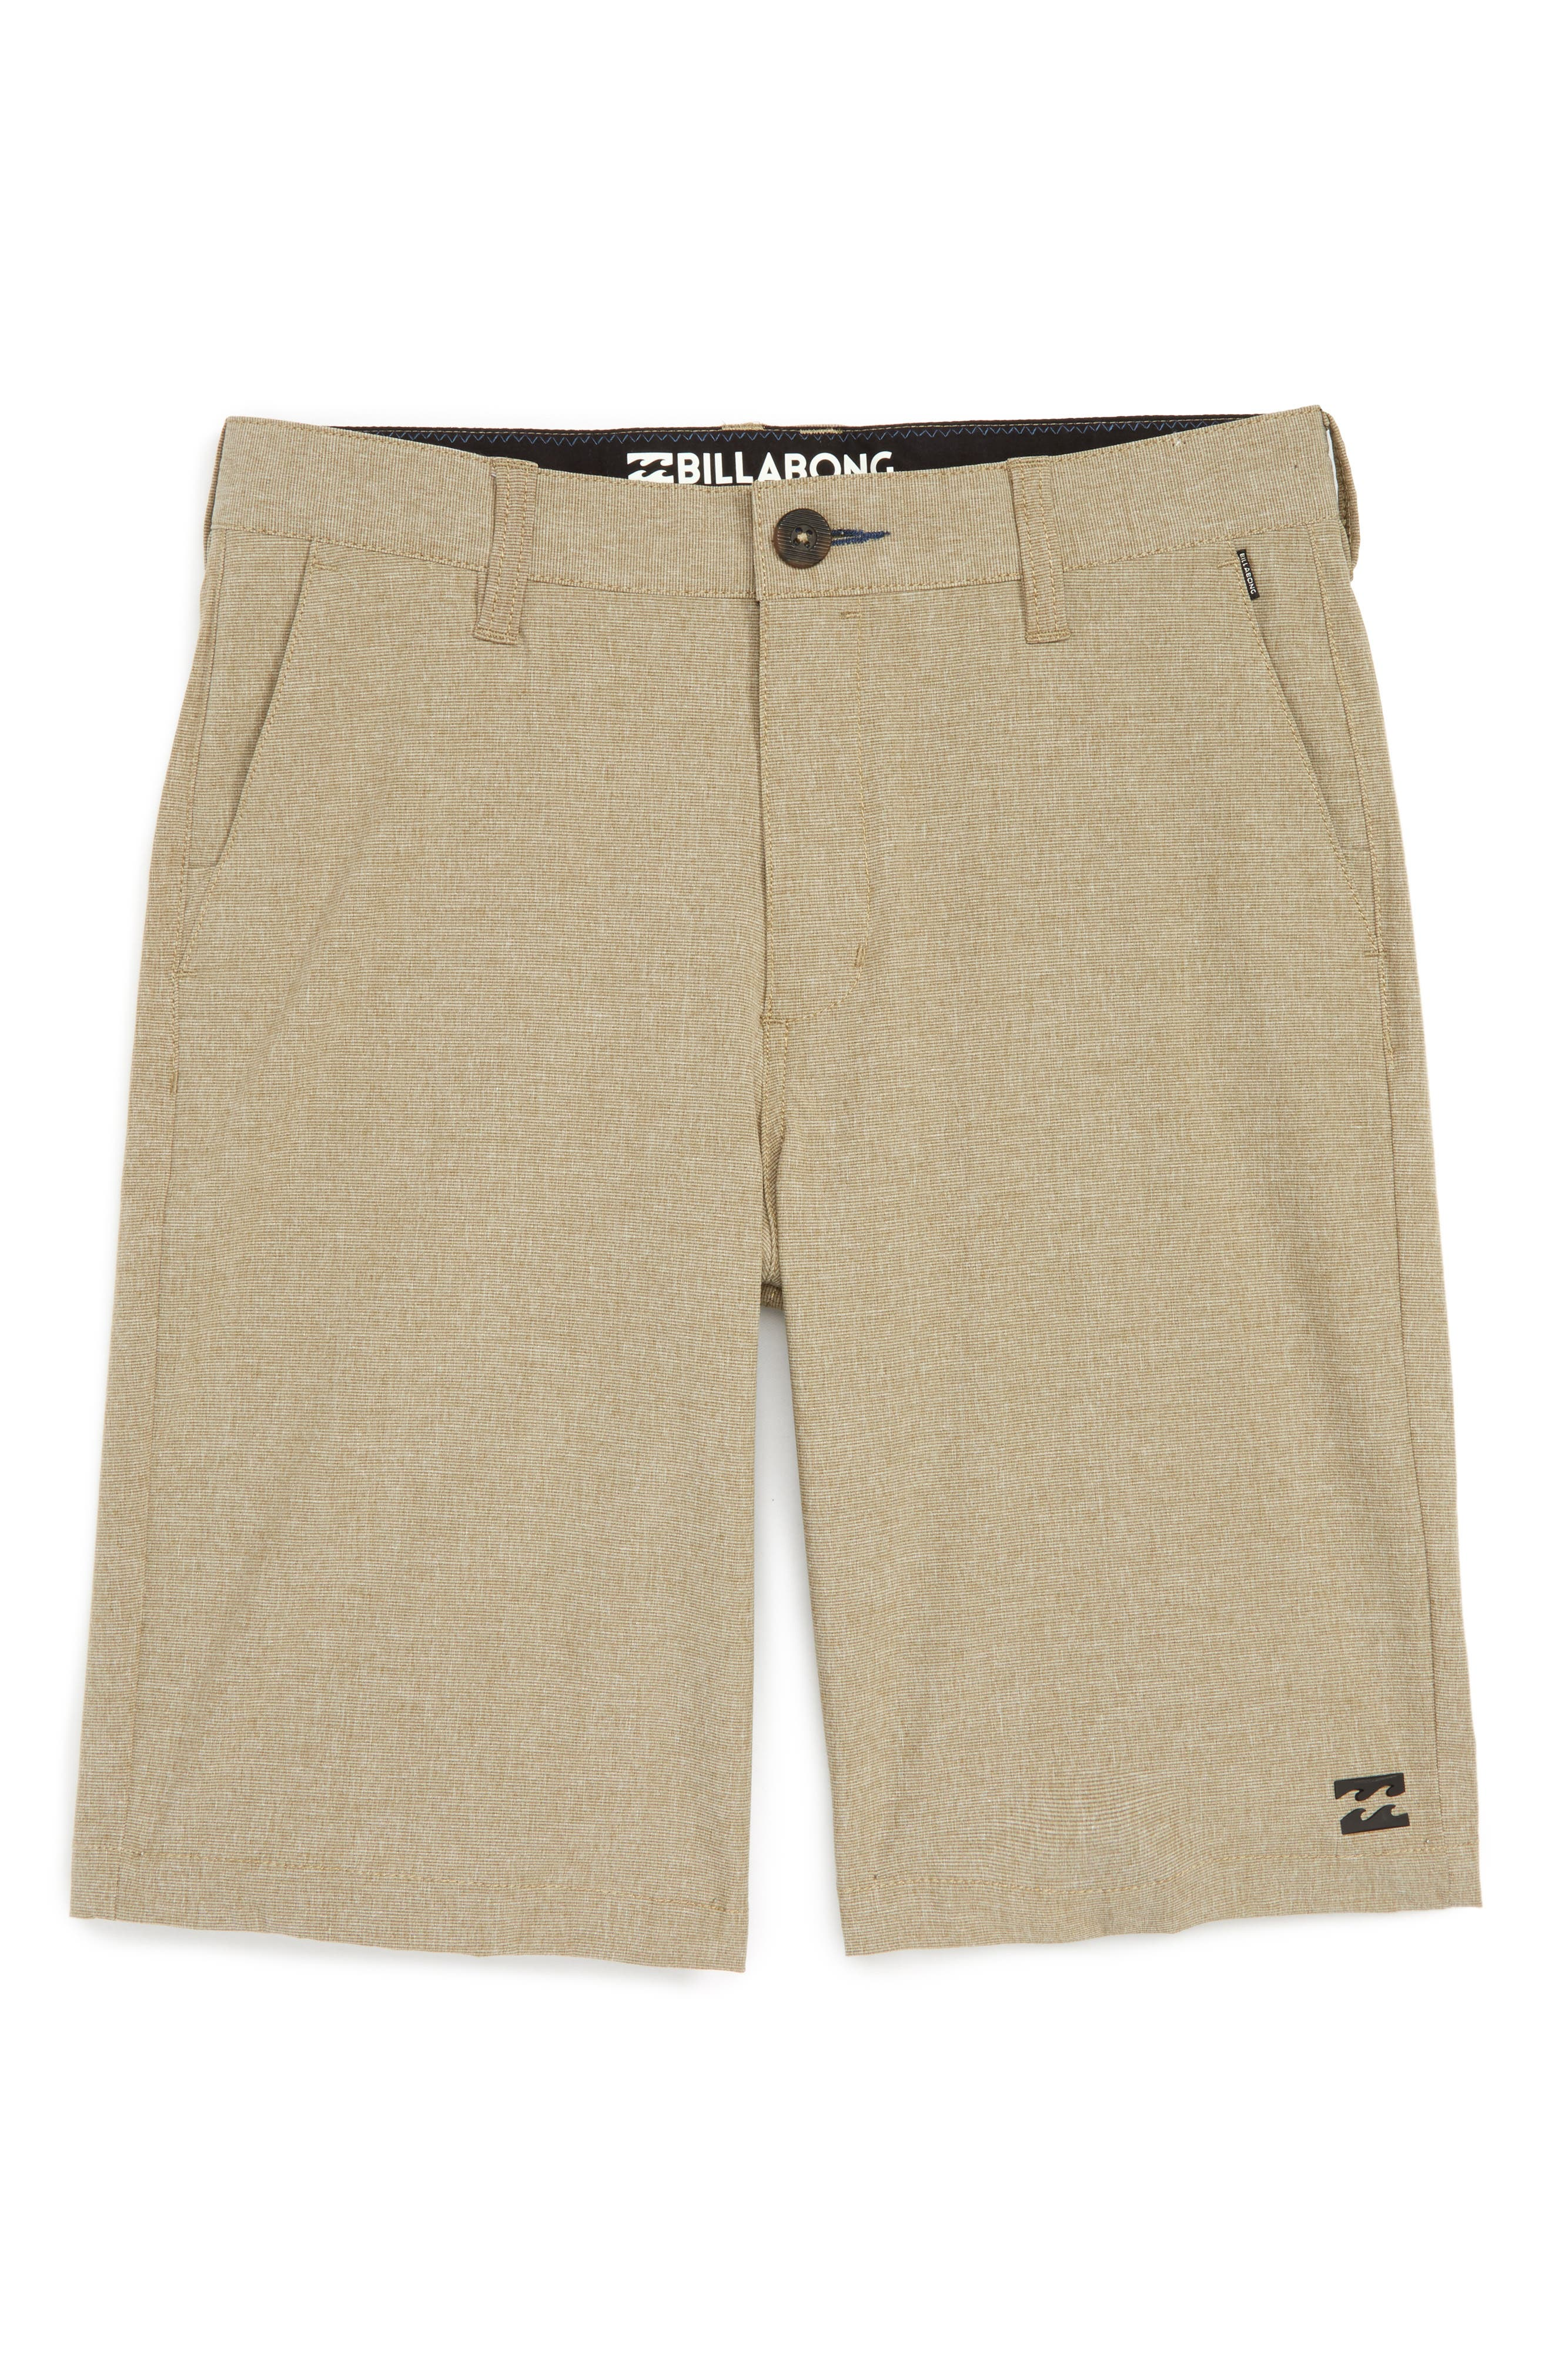 Crossfire X Submersible Hybrid Shorts,                             Alternate thumbnail 17, color,